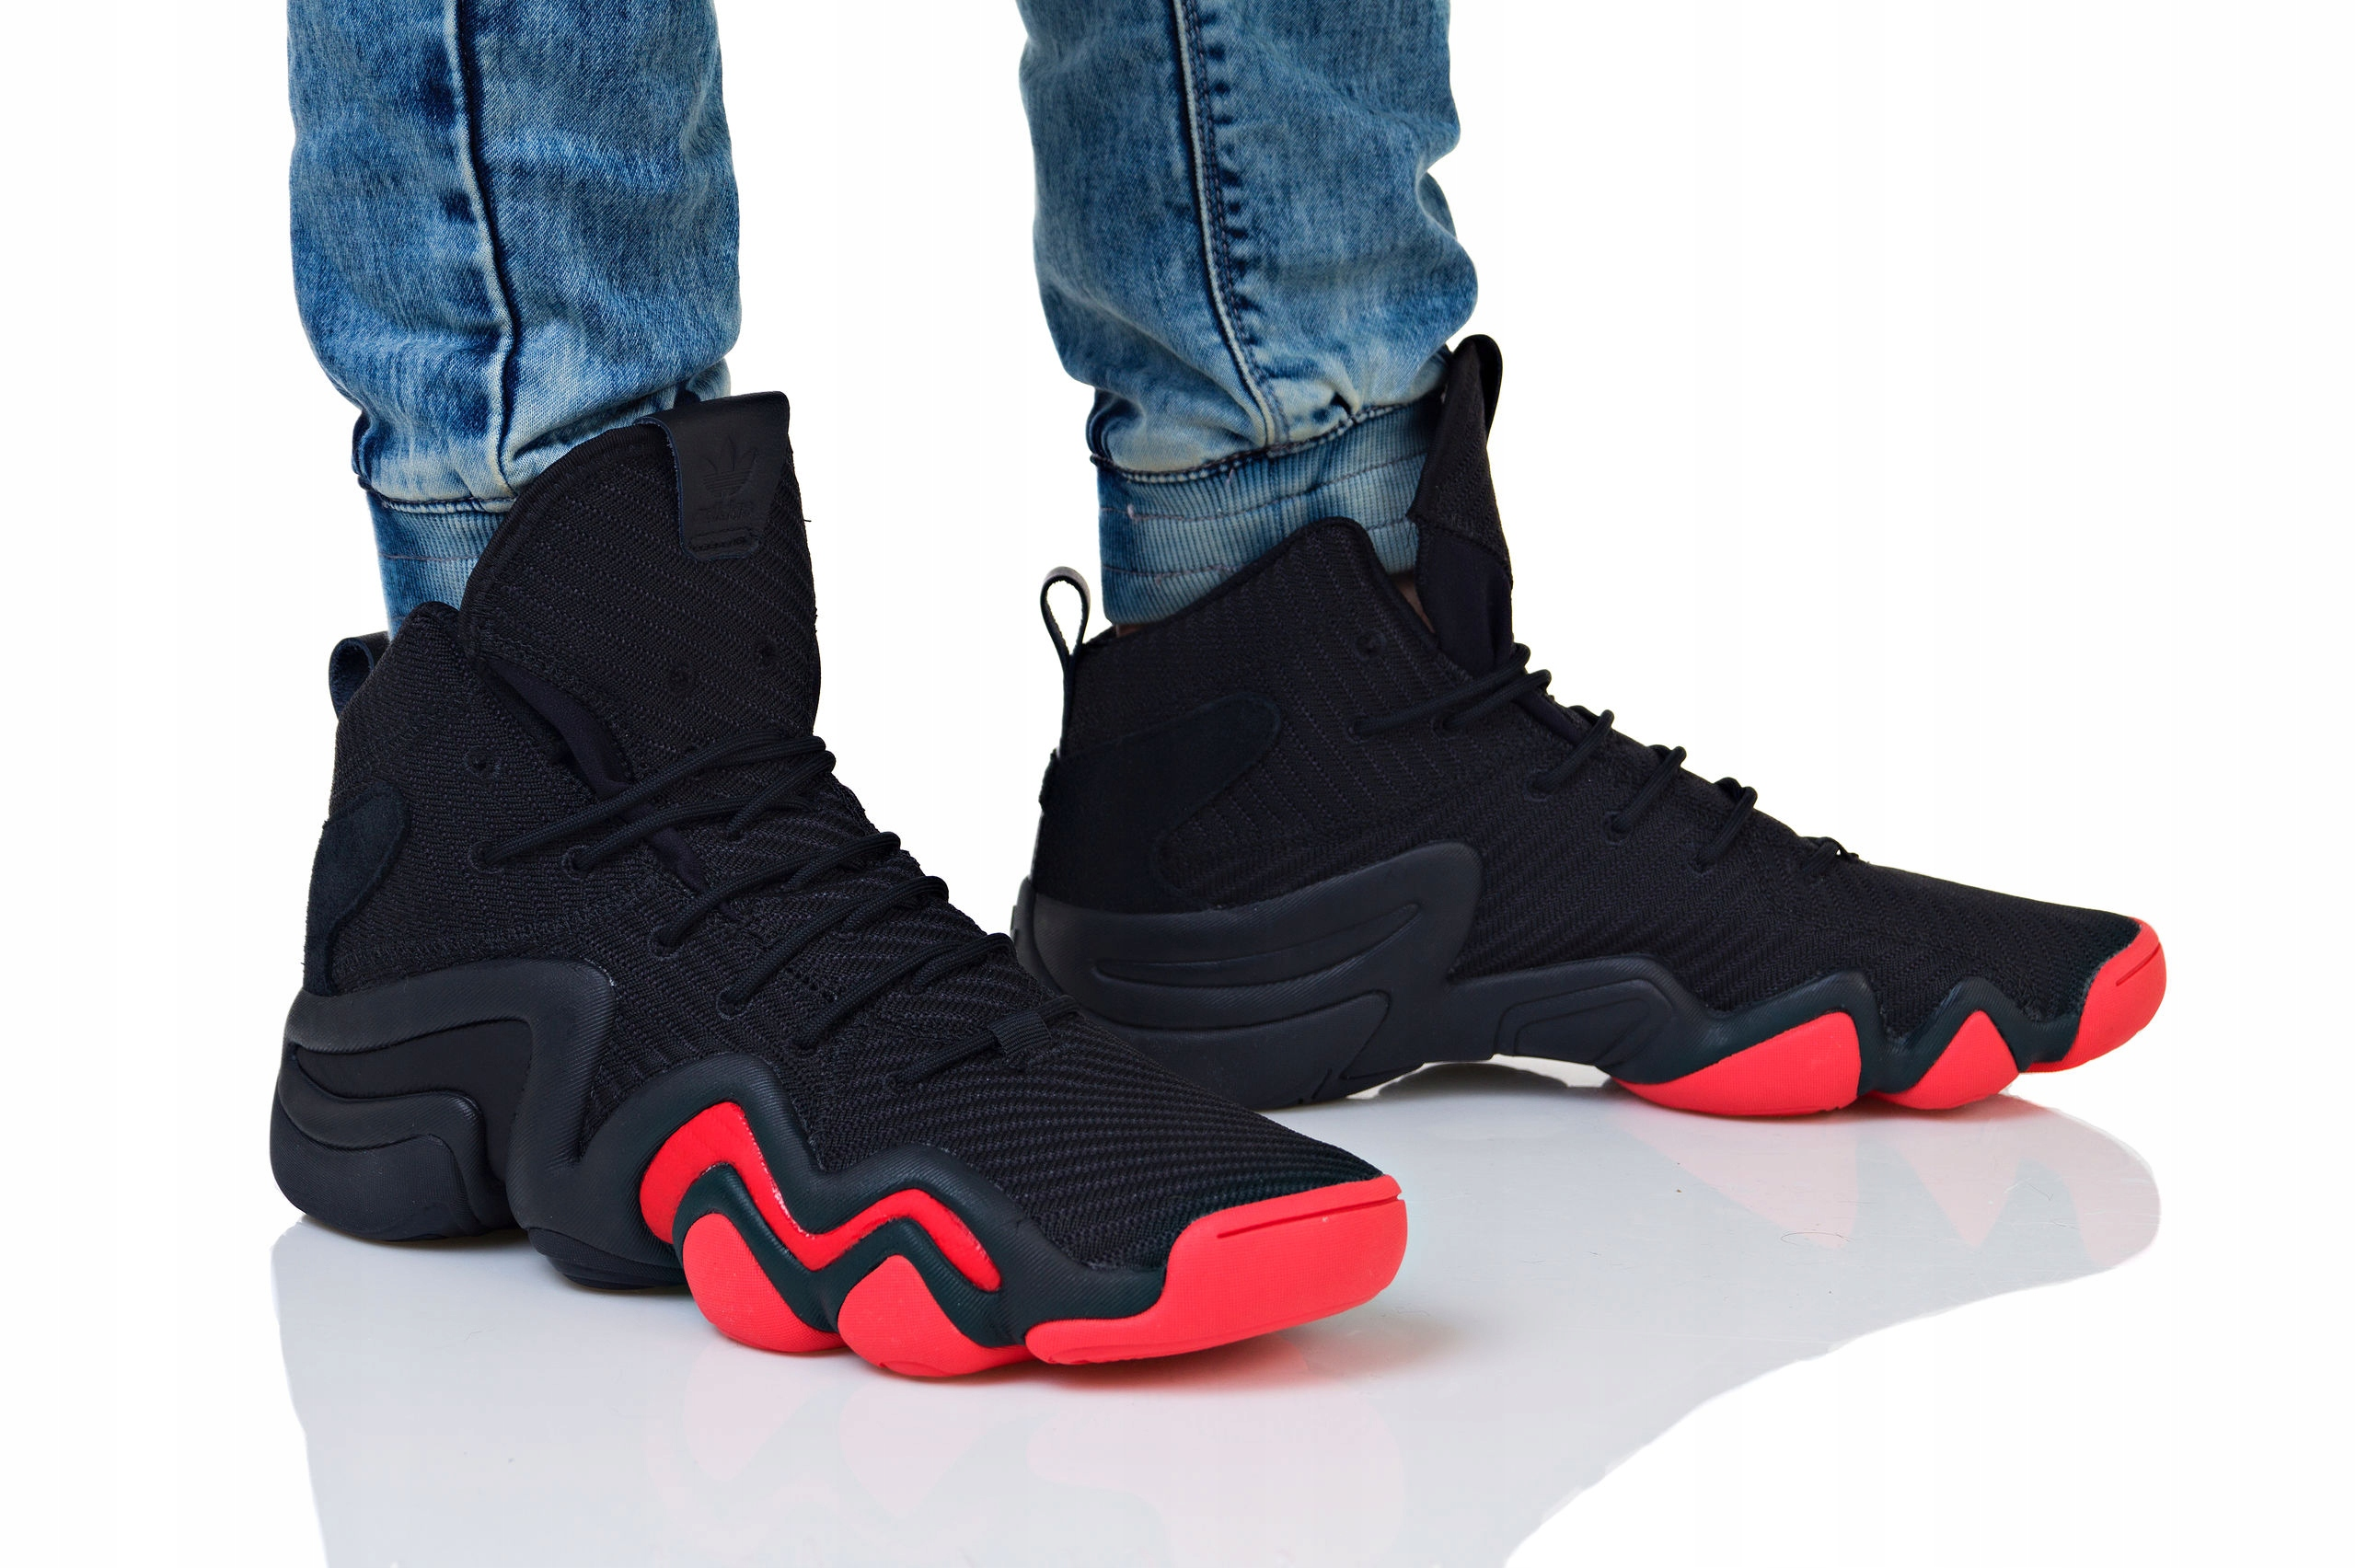 huge selection of 45268 a2554 BUTY ADIDAS CRAZY 8 ADV CK CQ0986 BASKET R. 47 13 (7325663162)